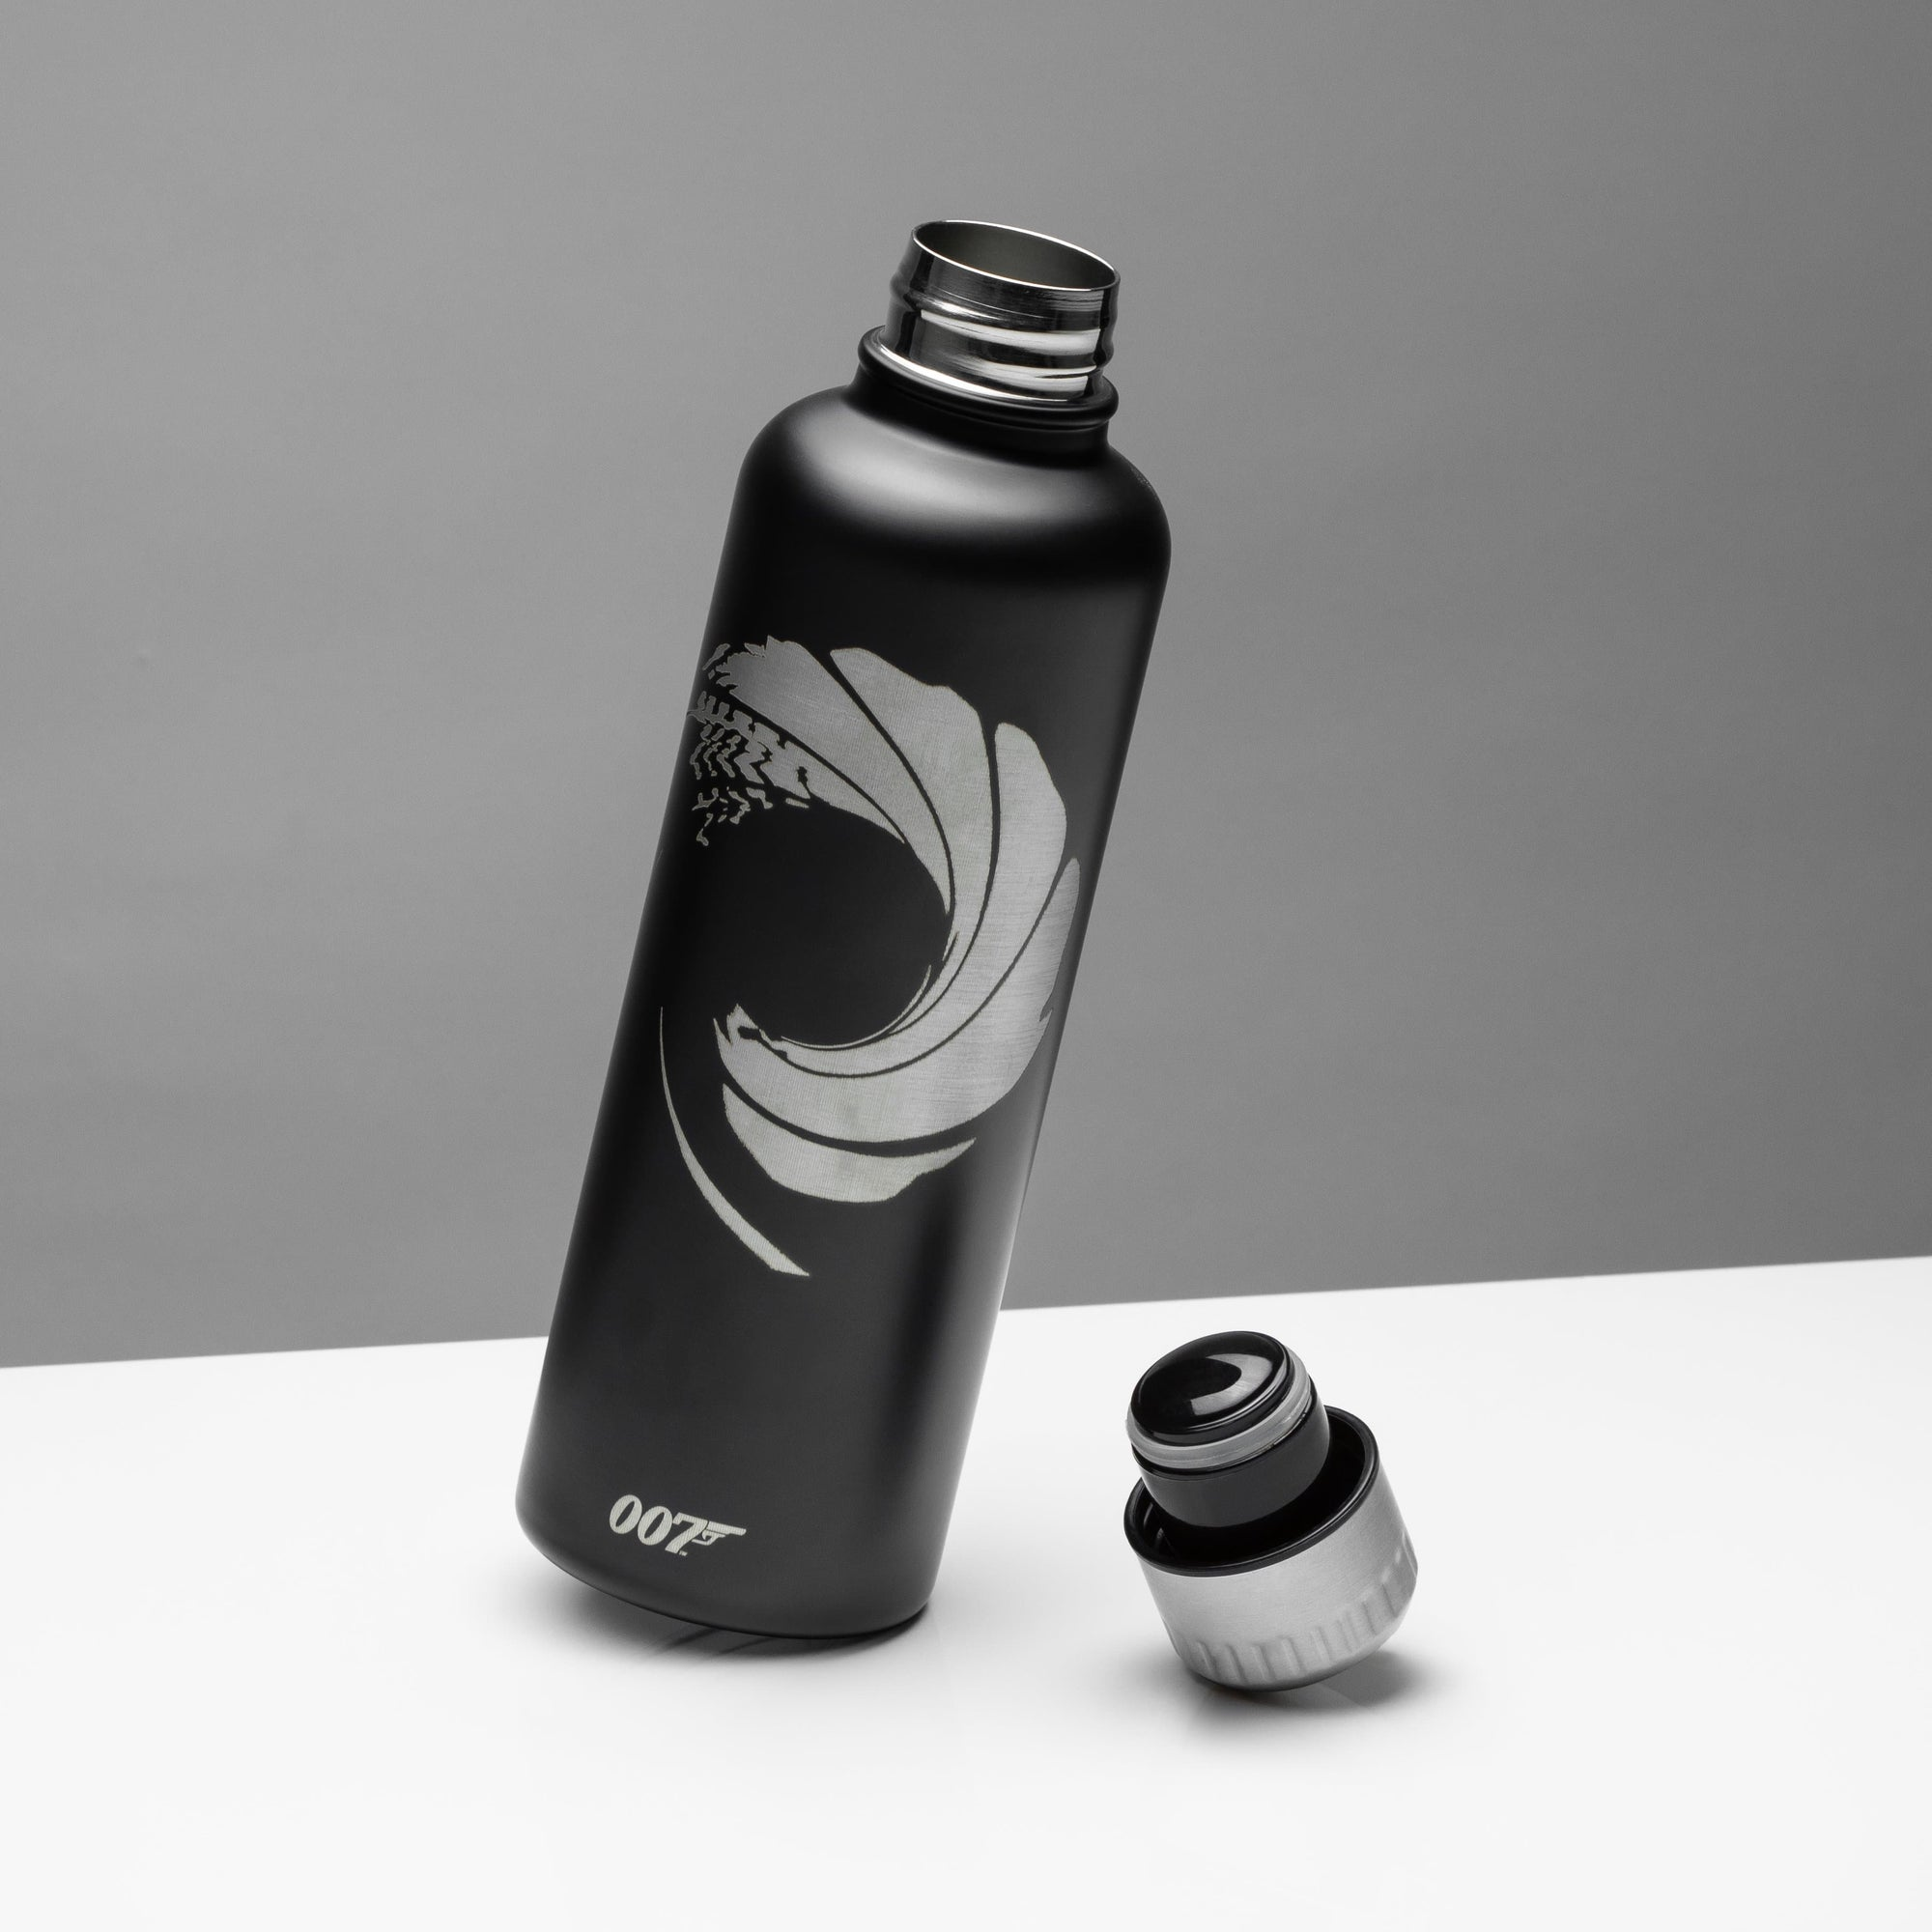 007 Gun Barrel Hot & Cold Water Bottle (500ml) - 007STORE